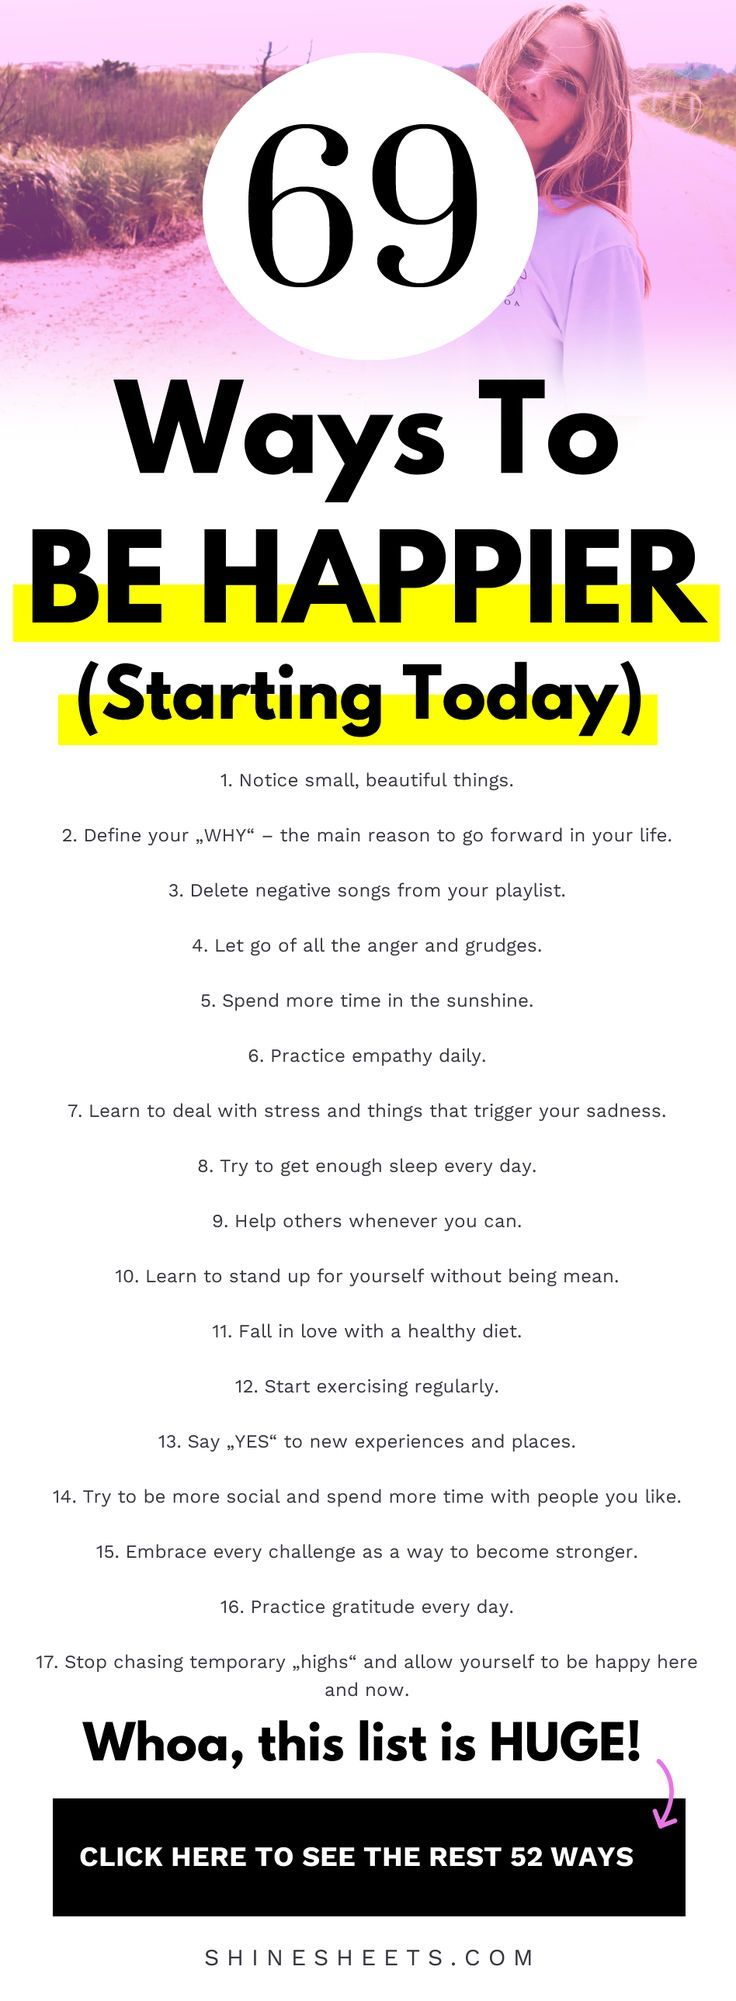 69 Ways To Be Happier (Starting Today)